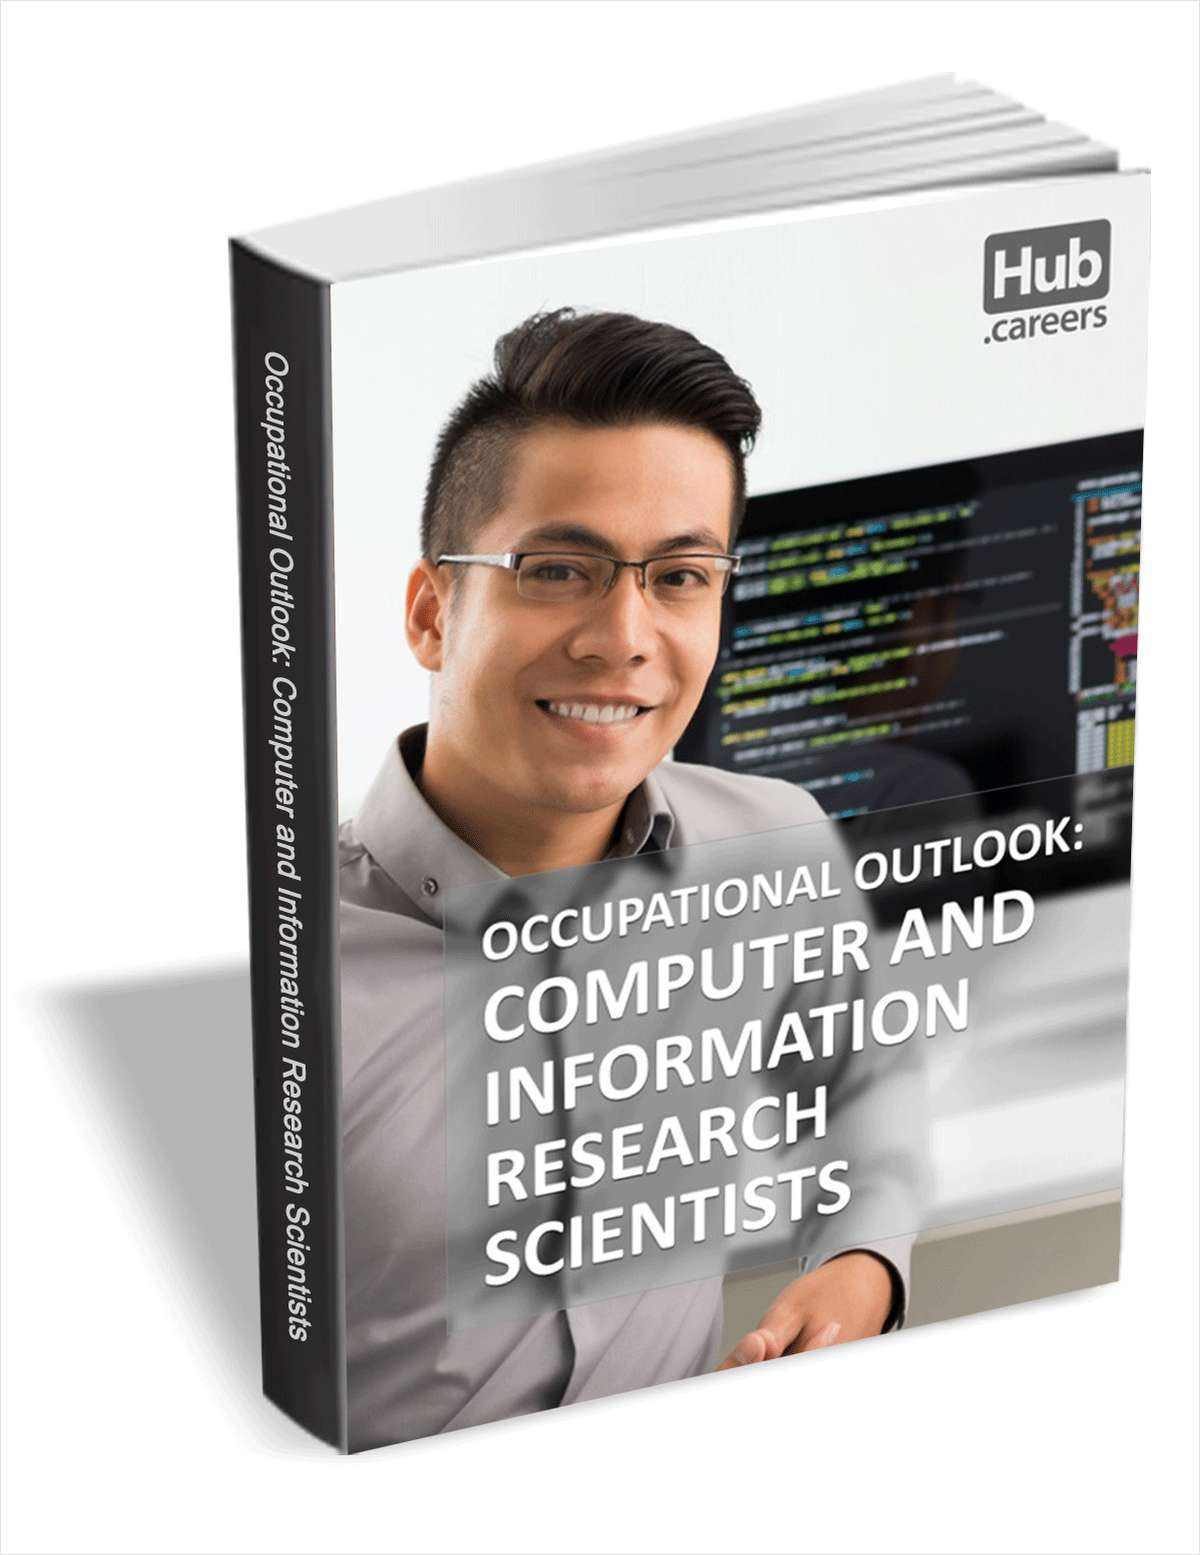 Computer and Information Research Scientists - Occupational Outlook